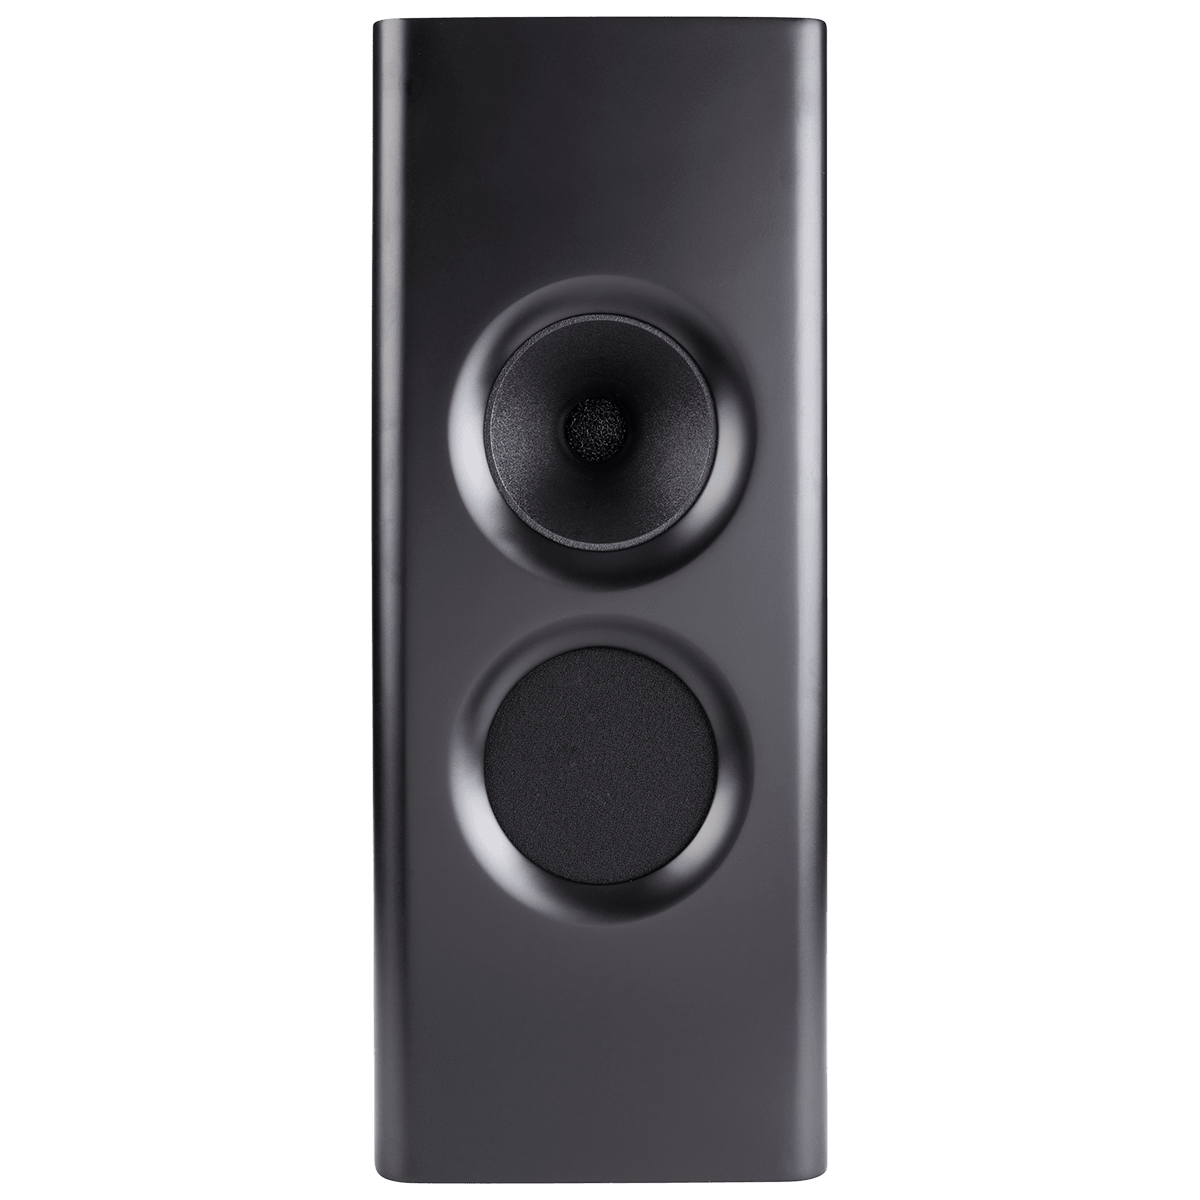 Procella P5V black front view without cover 1200×1200